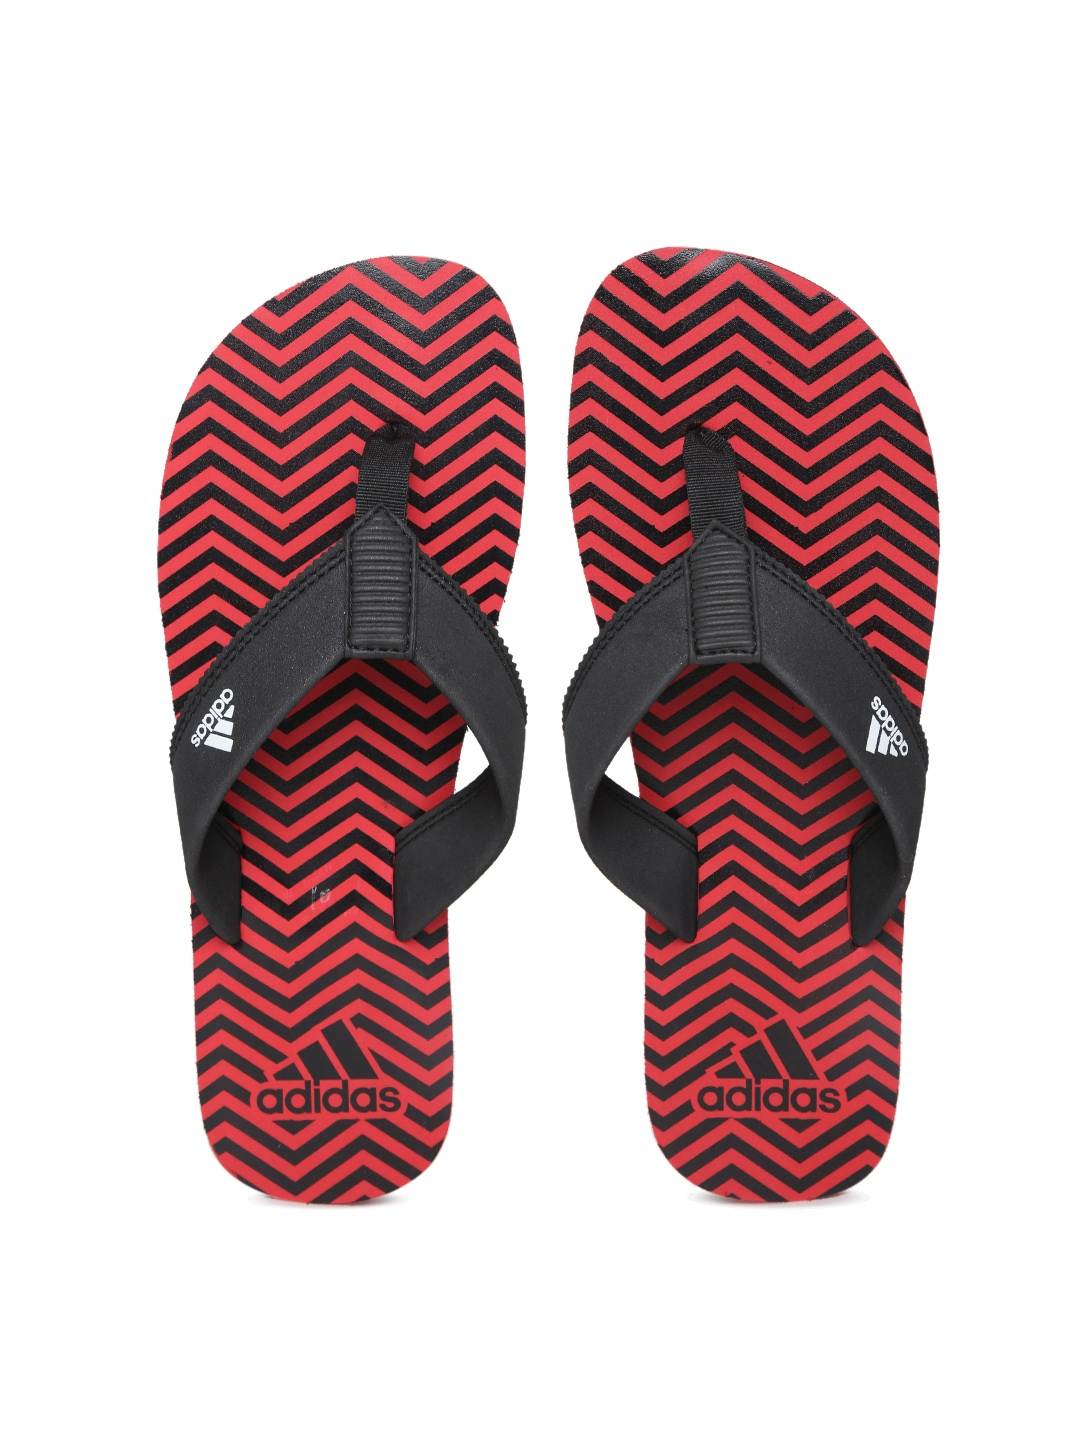 7c9c6a988a0c4b Adidas Flip Flops Scarves Tights Tracksuits - Buy Adidas Flip Flops Scarves  Tights Tracksuits online in India